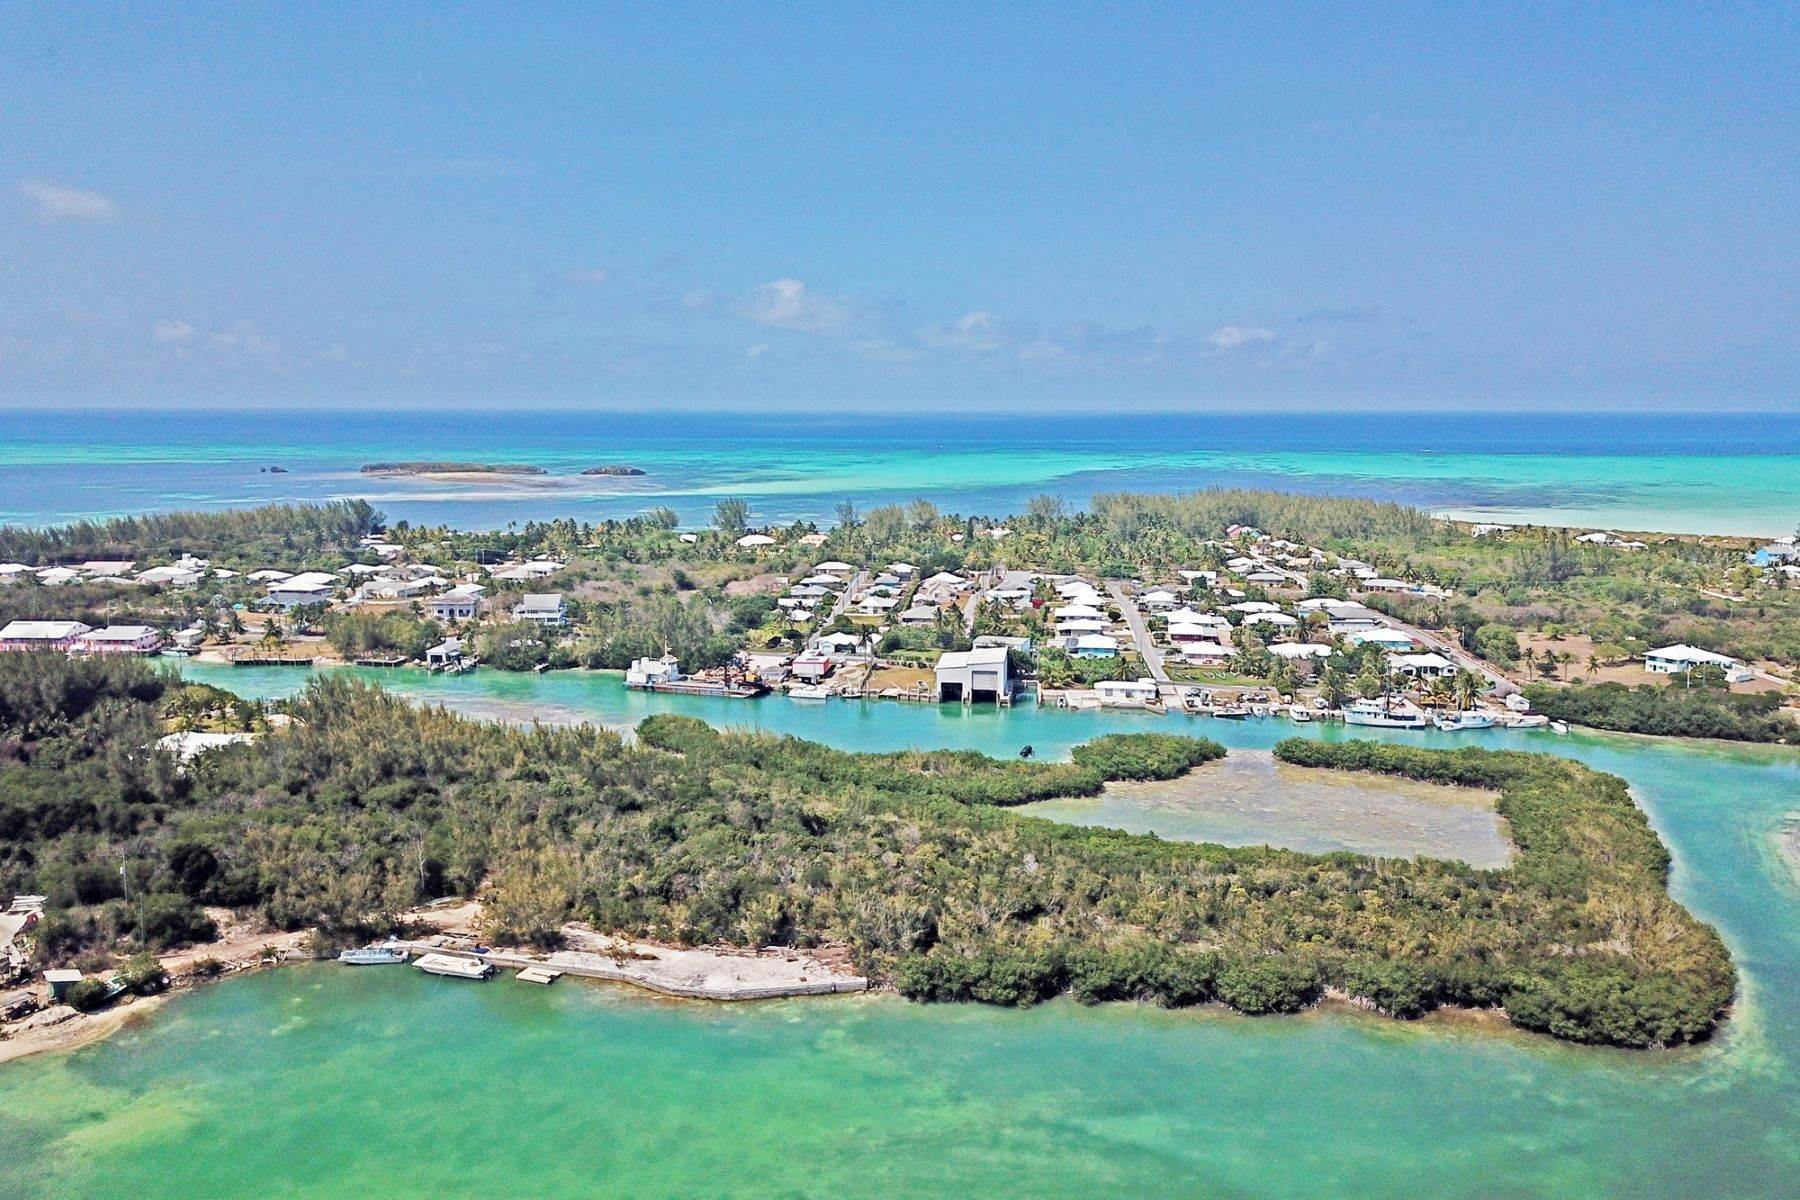 Land for Sale at 6.8 Acres with Dock Russell Island, Spanish Wells, Eleuthera Bahamas